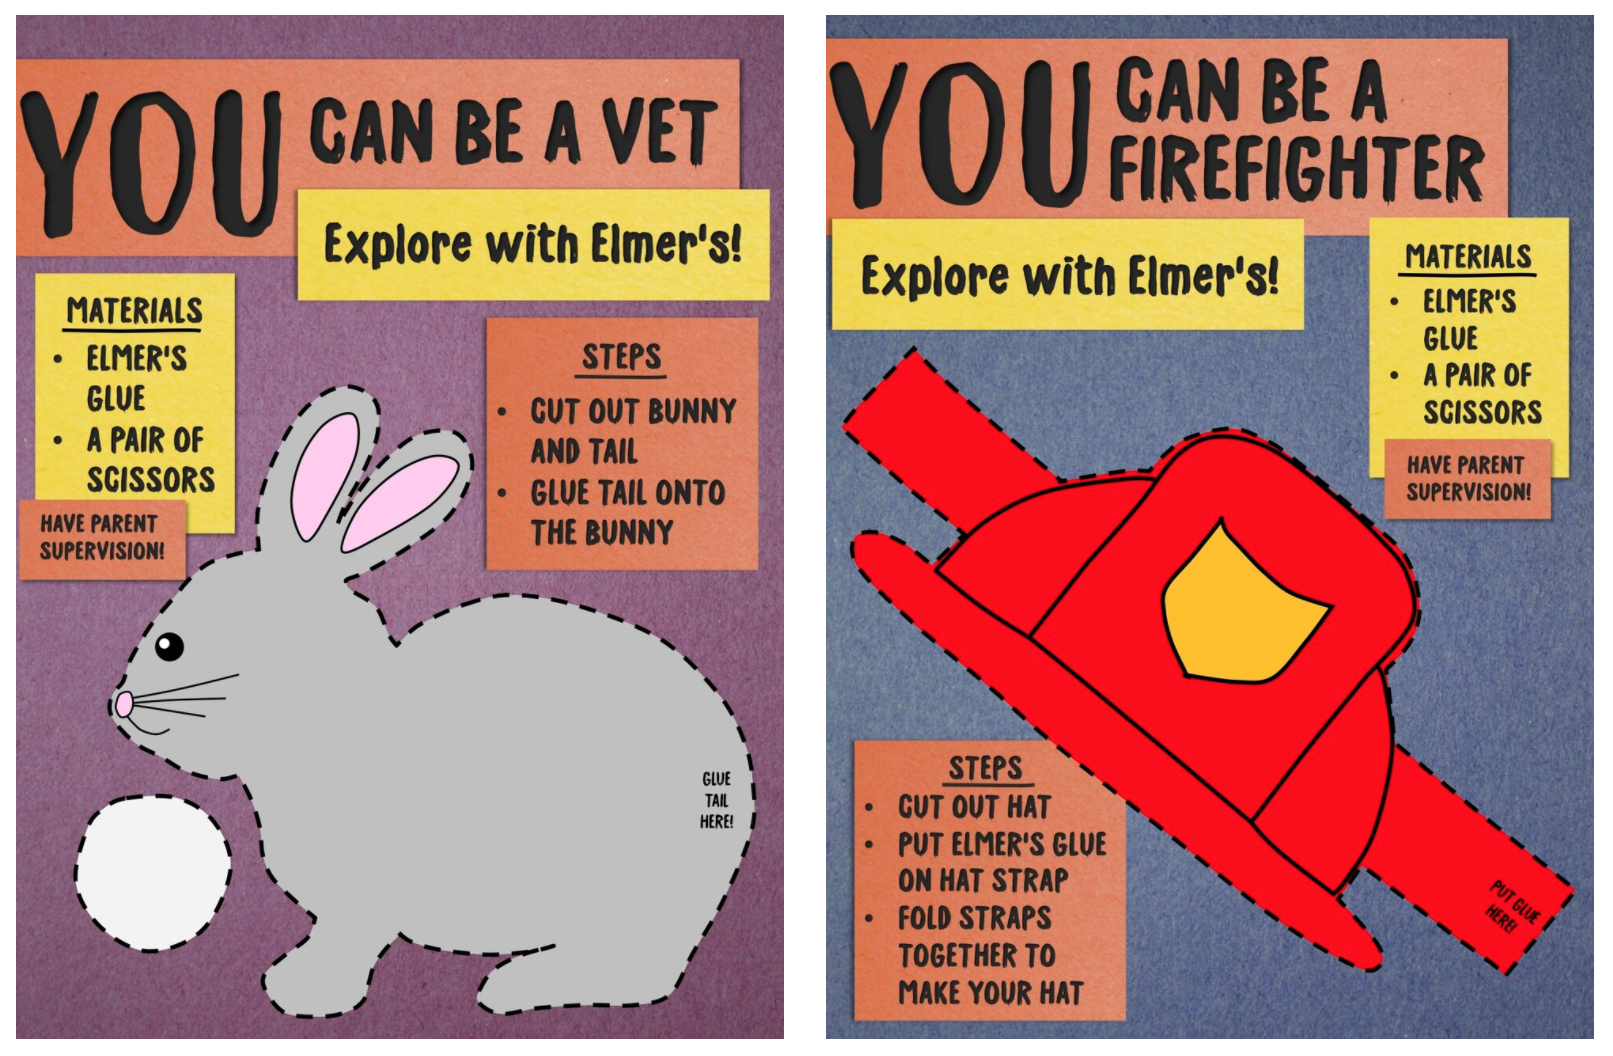 """Two advertisements for Elmer's glue. The left one shows an illustration of a rabbit with a cutting pattern. The text says: """"You can be a vet. Explore with Elmer's! Materials: Elmer's glue. A pair of scissors. Have parent supervison! Steps: Cut out bunny and tail. Glue tail onto the bunny."""" The right advertisement shows an illustration of a firefighter's helmet with a cutting pattern. The text says: """"You can be a firefighter. Explore with Elmer's! Materials: Elmer's glue. A pair of scissors. Have parent supervision! Steps: Cut out hat. Pult Elmer's glue on hat strap. Fold straps together to make your hat."""""""